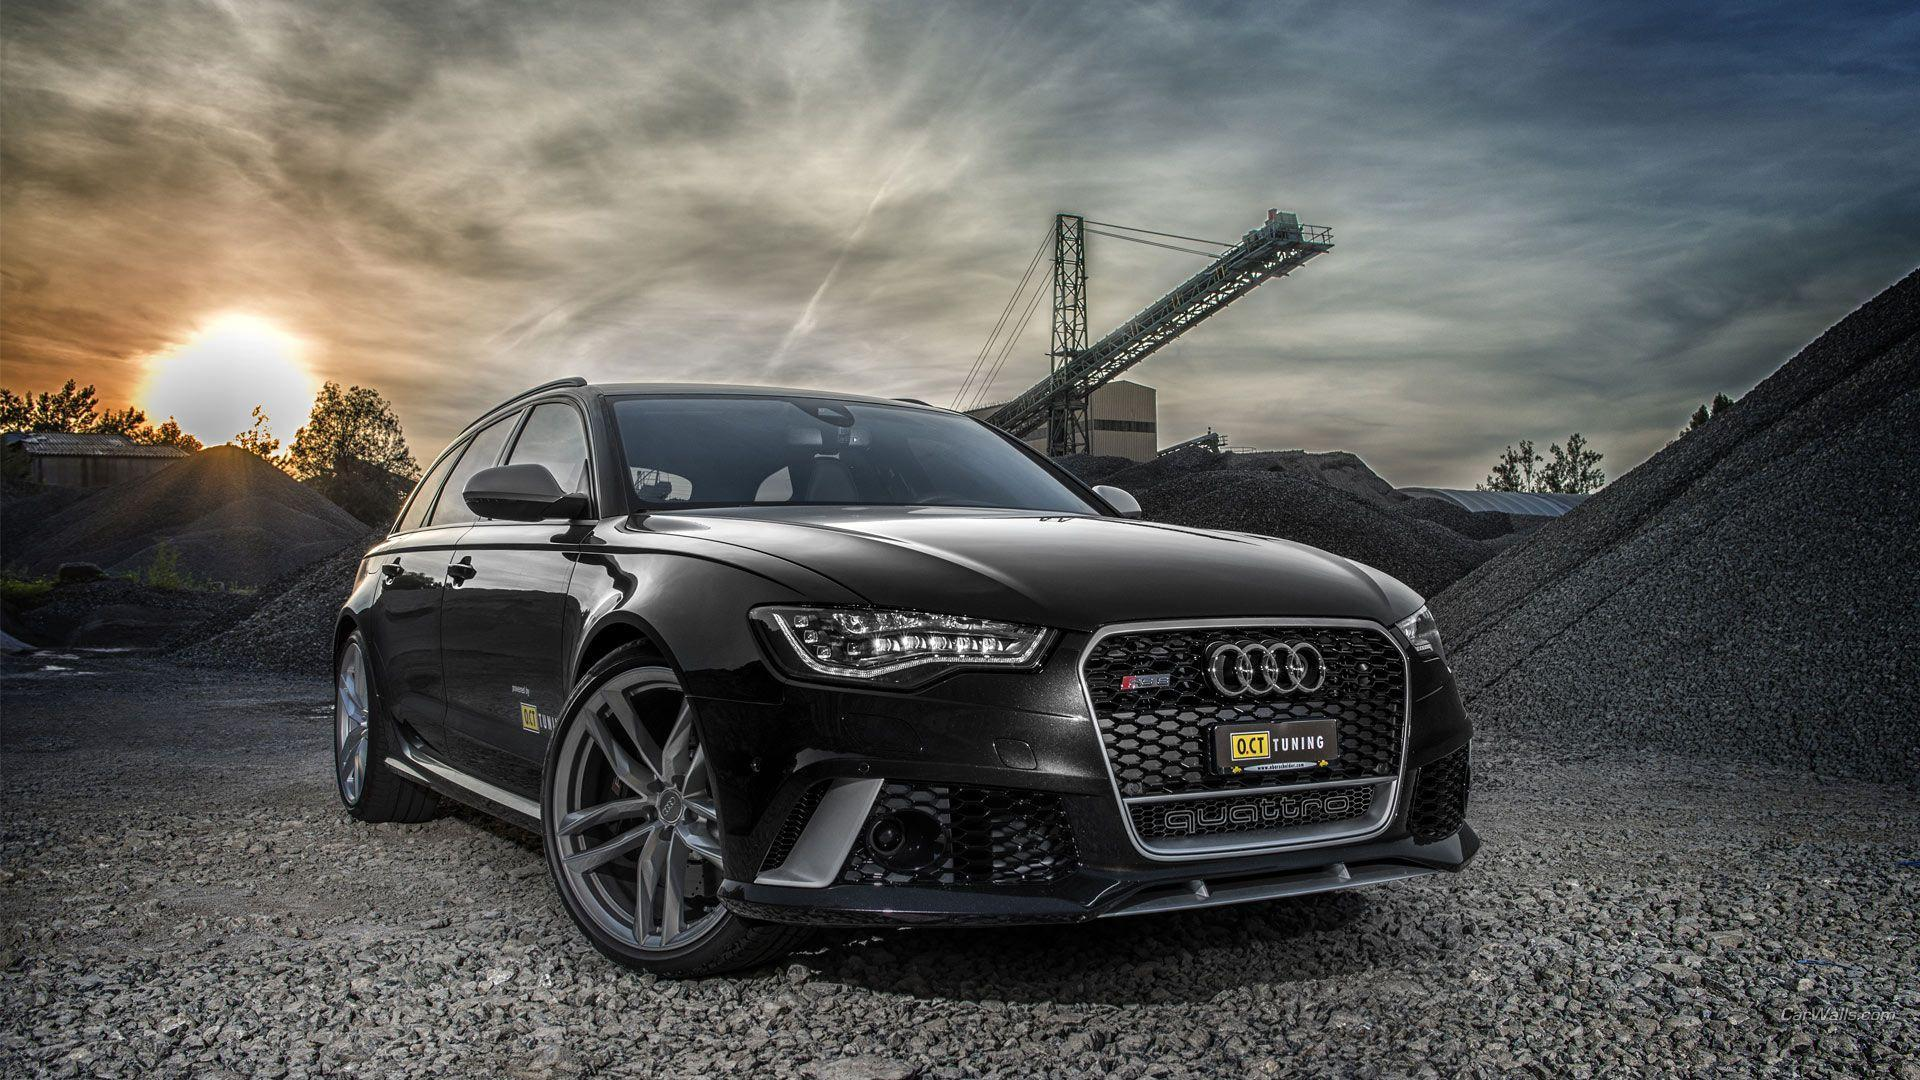 Audi RS6 Computer Wallpapers, Desktop Backgrounds | 1920x1080 | ID ...